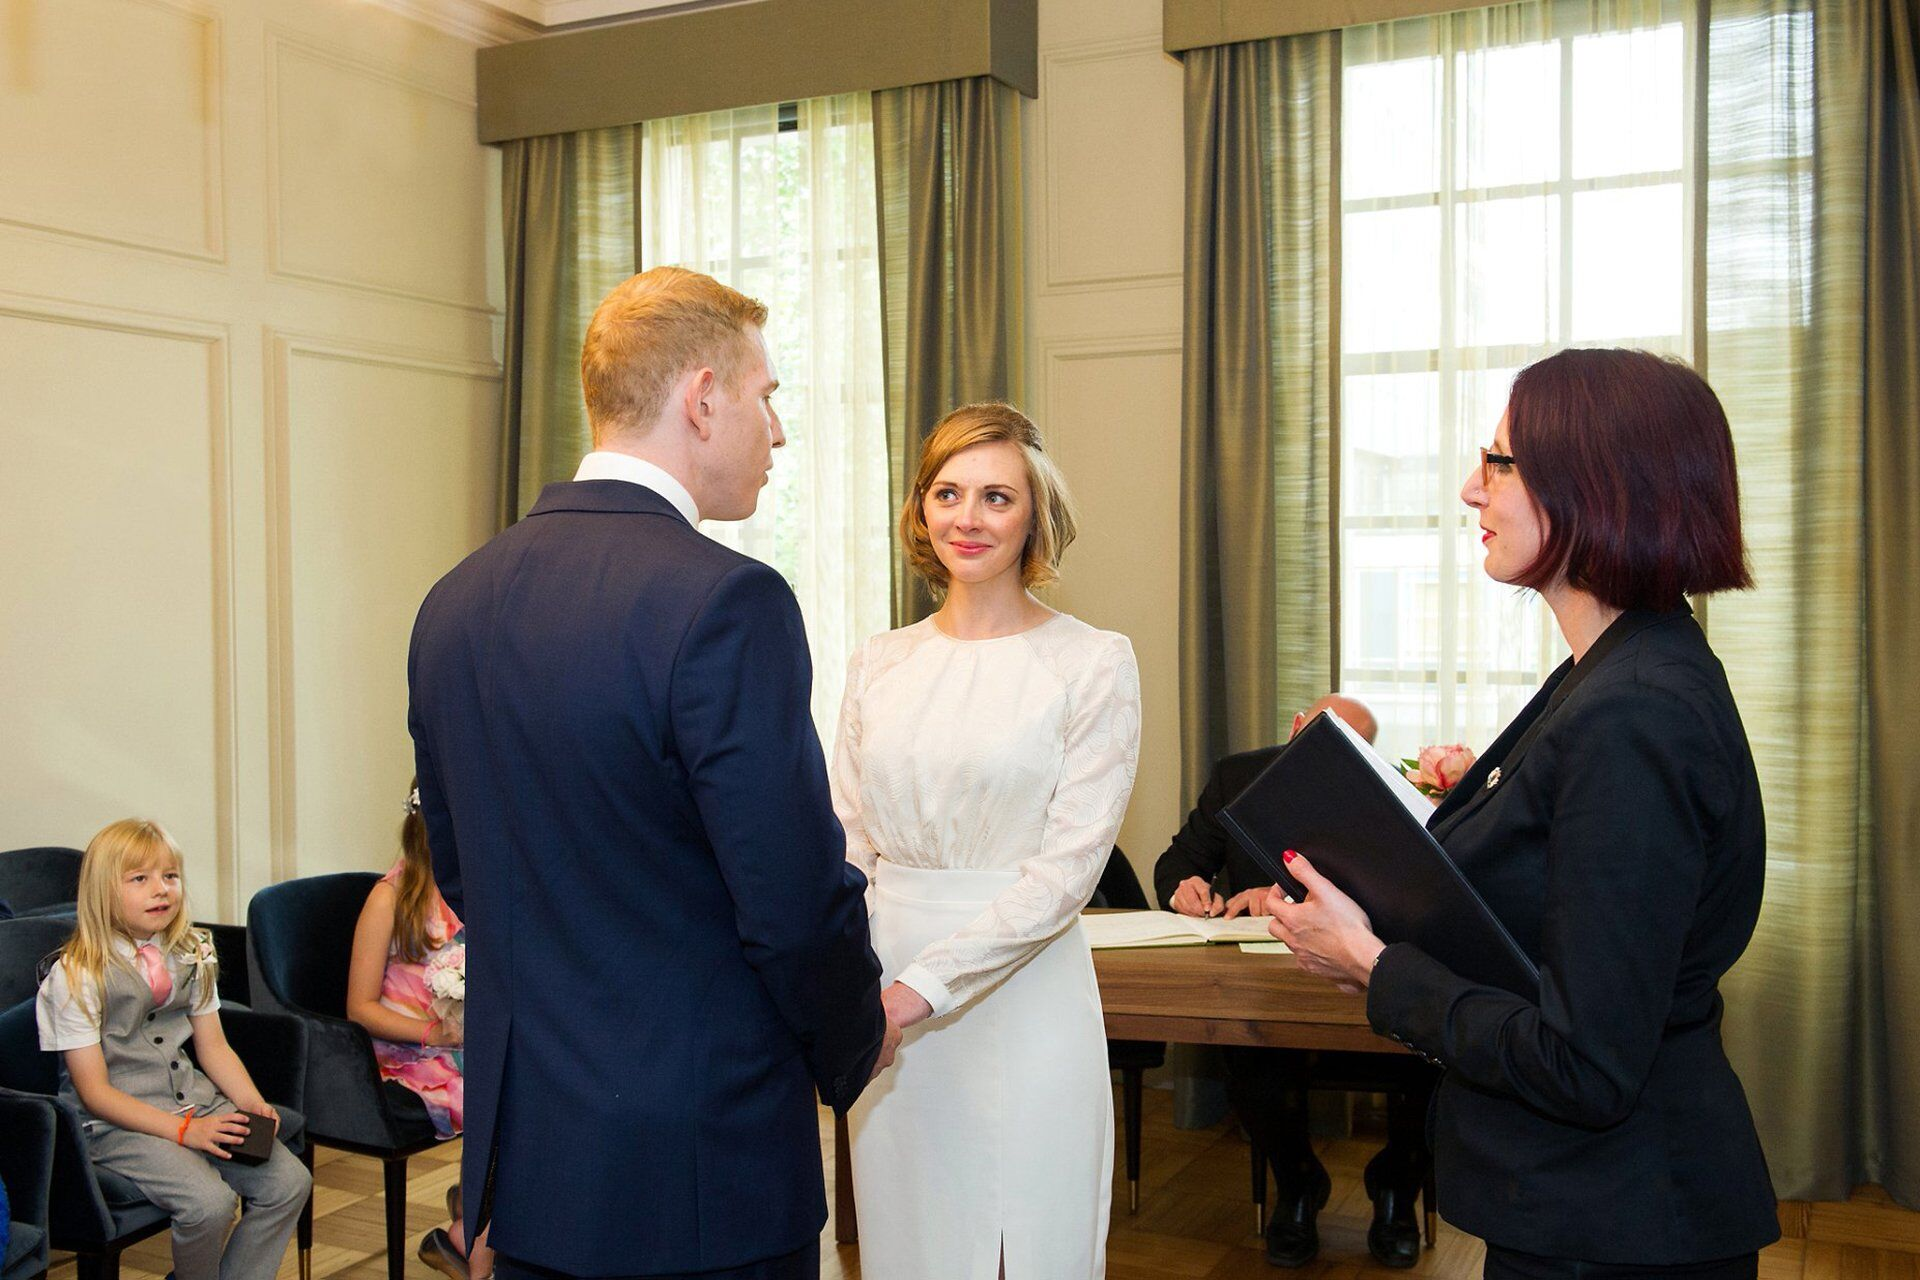 pimlico room ceremony at westminster registry office in central london